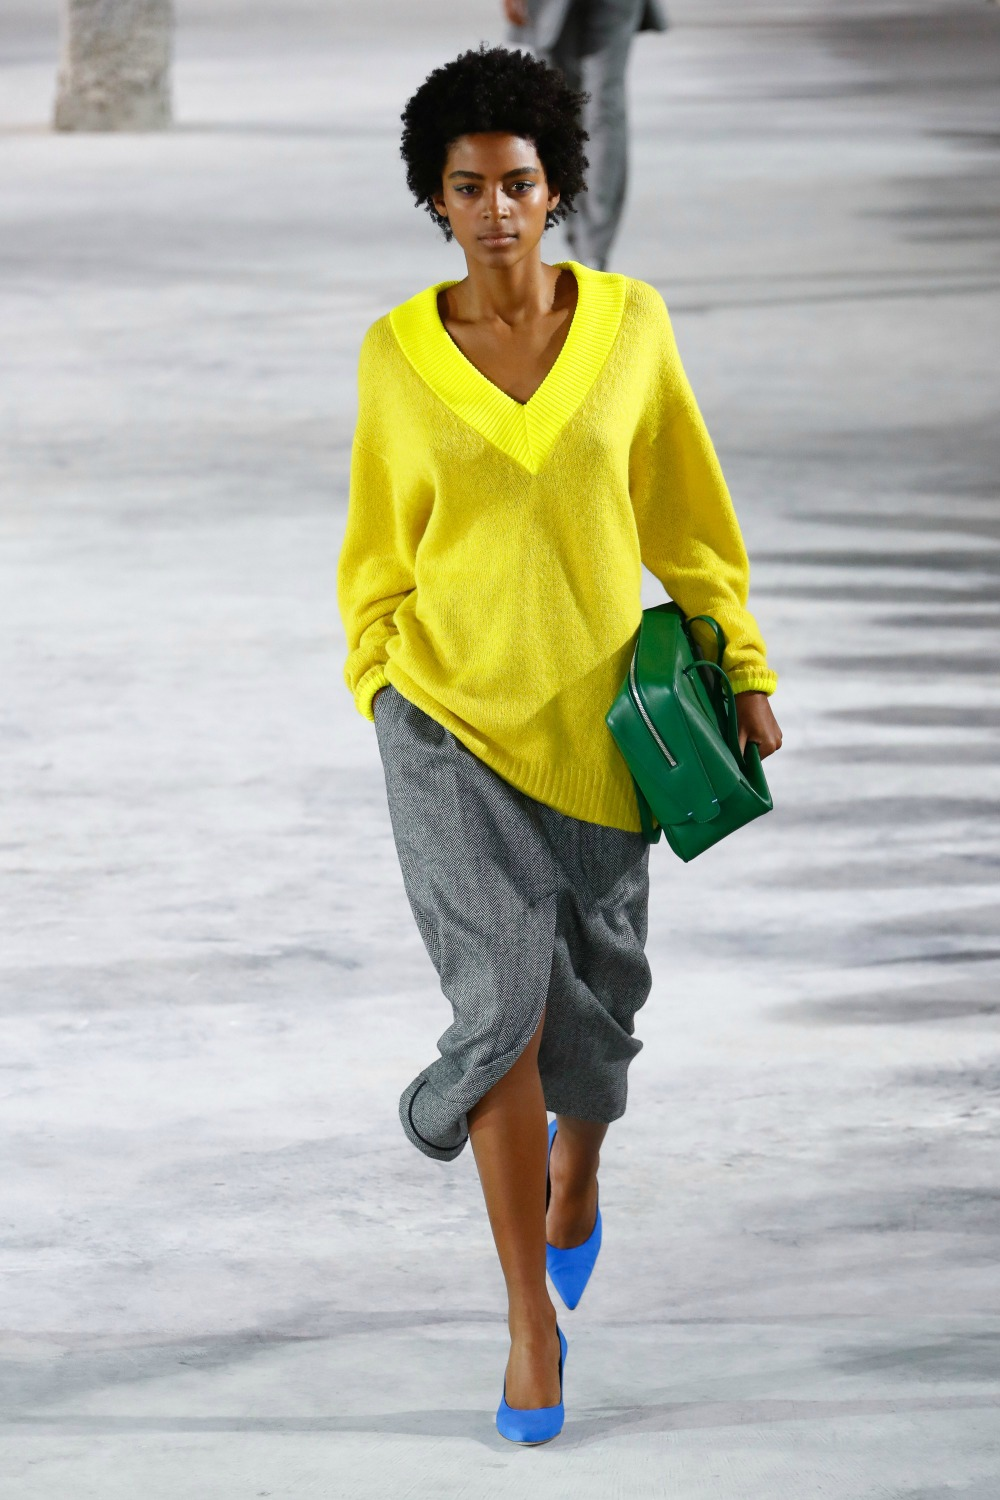 Yellow Fall Fashion Trend on the Tibi FW18 Runway at New York Fashion Week #FallFashion #FallTrends #Runway #FashionWeek #NYFW #FallStyle #FallTrends